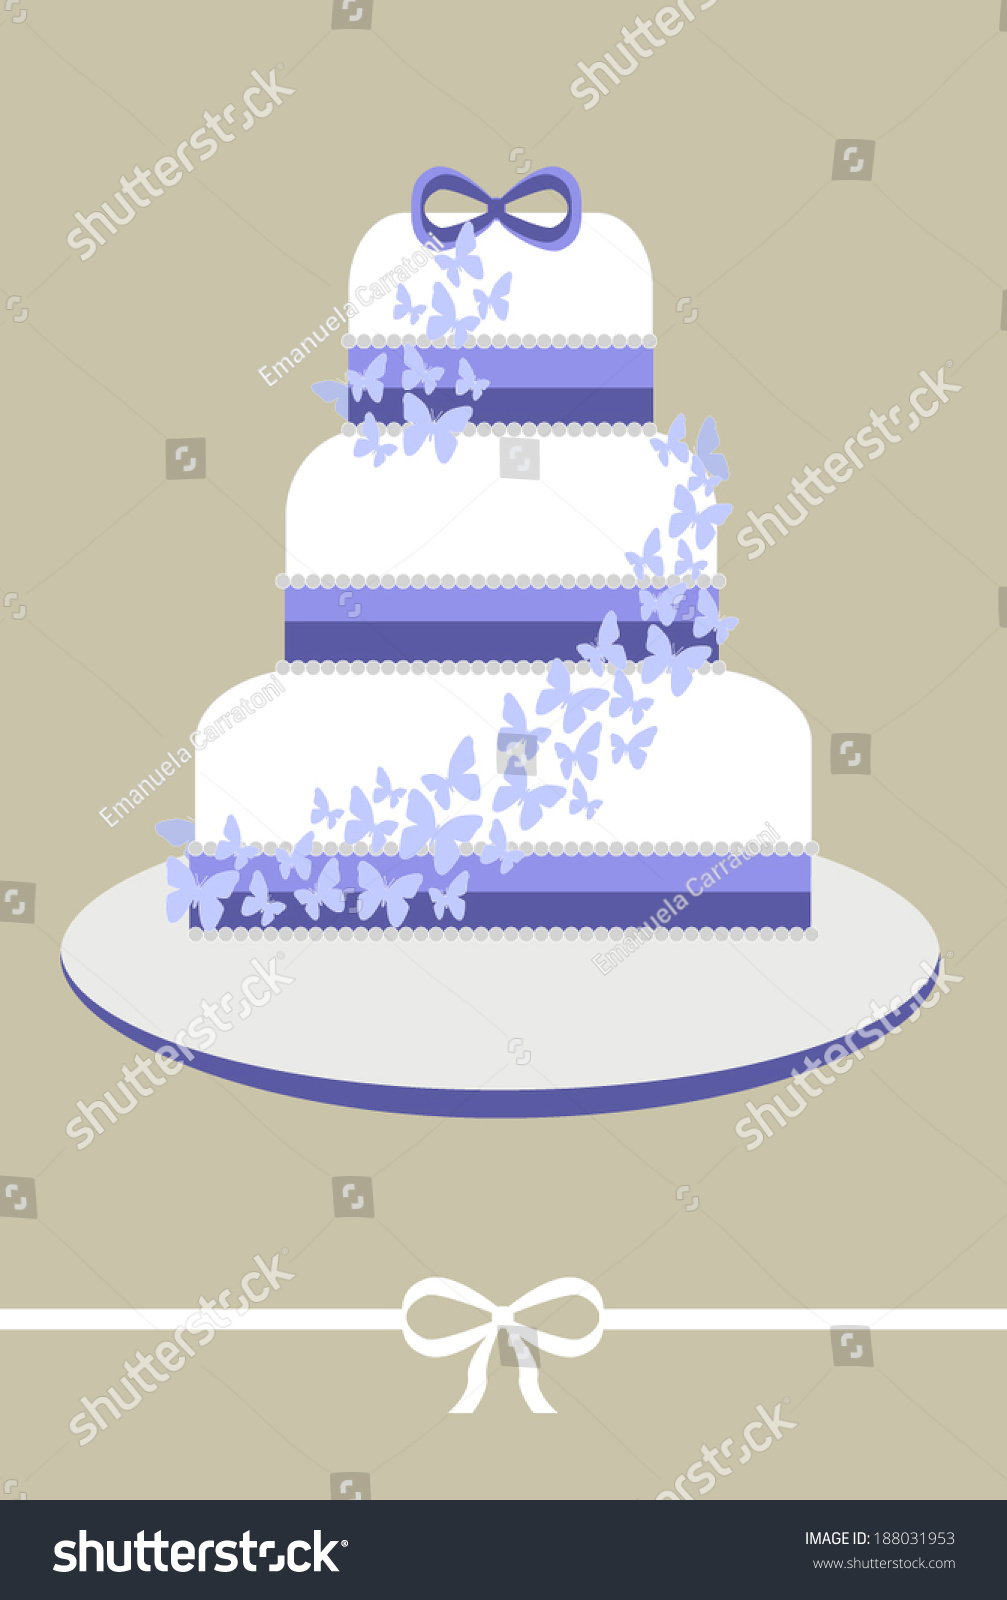 wedding cake vector wedding cake stock vector 188031953 26758